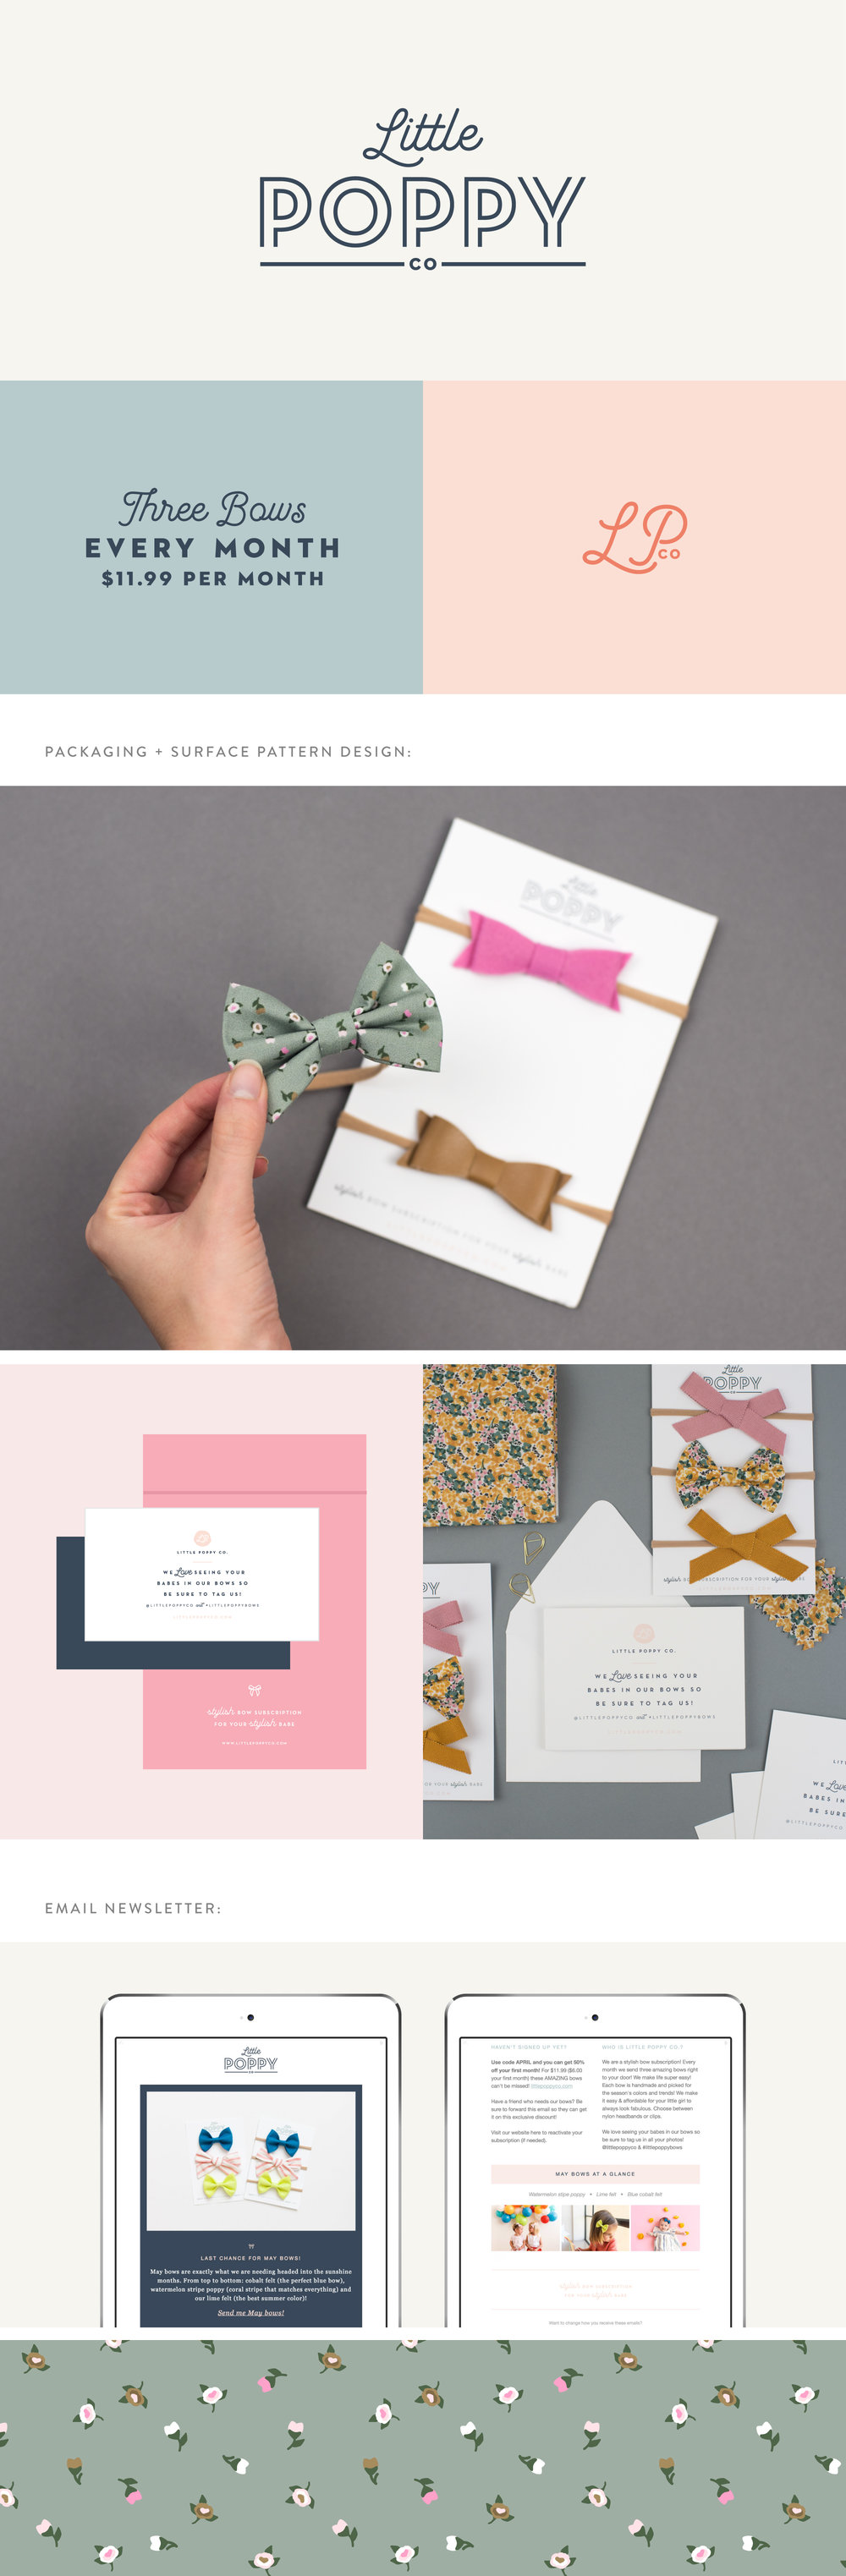 Little Poppy Co. brand identity | Spruce Rd. | logo design, packaging design, surface pattern, bows, baby branding